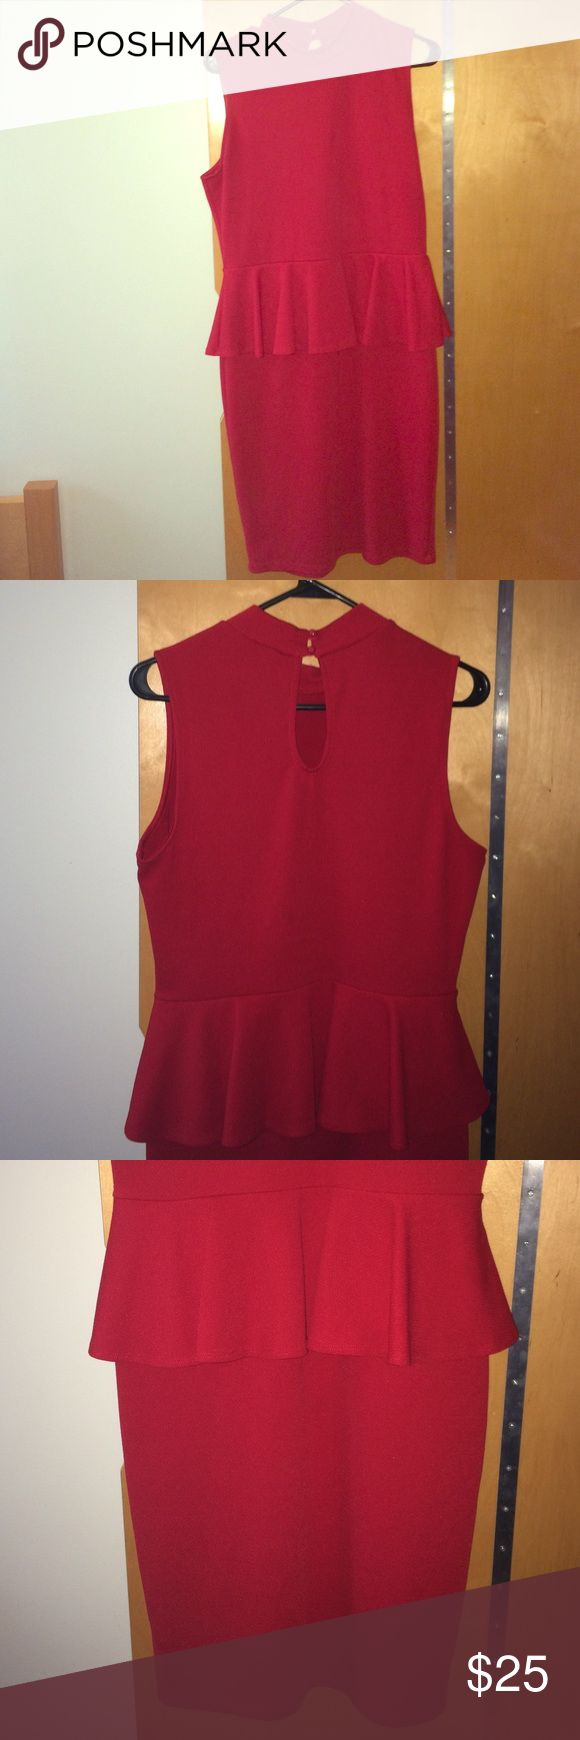 Fashion to Figure Red Peplum Dress Sz 1X Great Buy Fashion to Figure Red Peplum Dress. Curvy Fit! Keyhole design on back. SUPER CUTE!! Plus size! Size 1X Slightly worn. Great condition! Great Buy! Fashion to Figure Dresses Mini